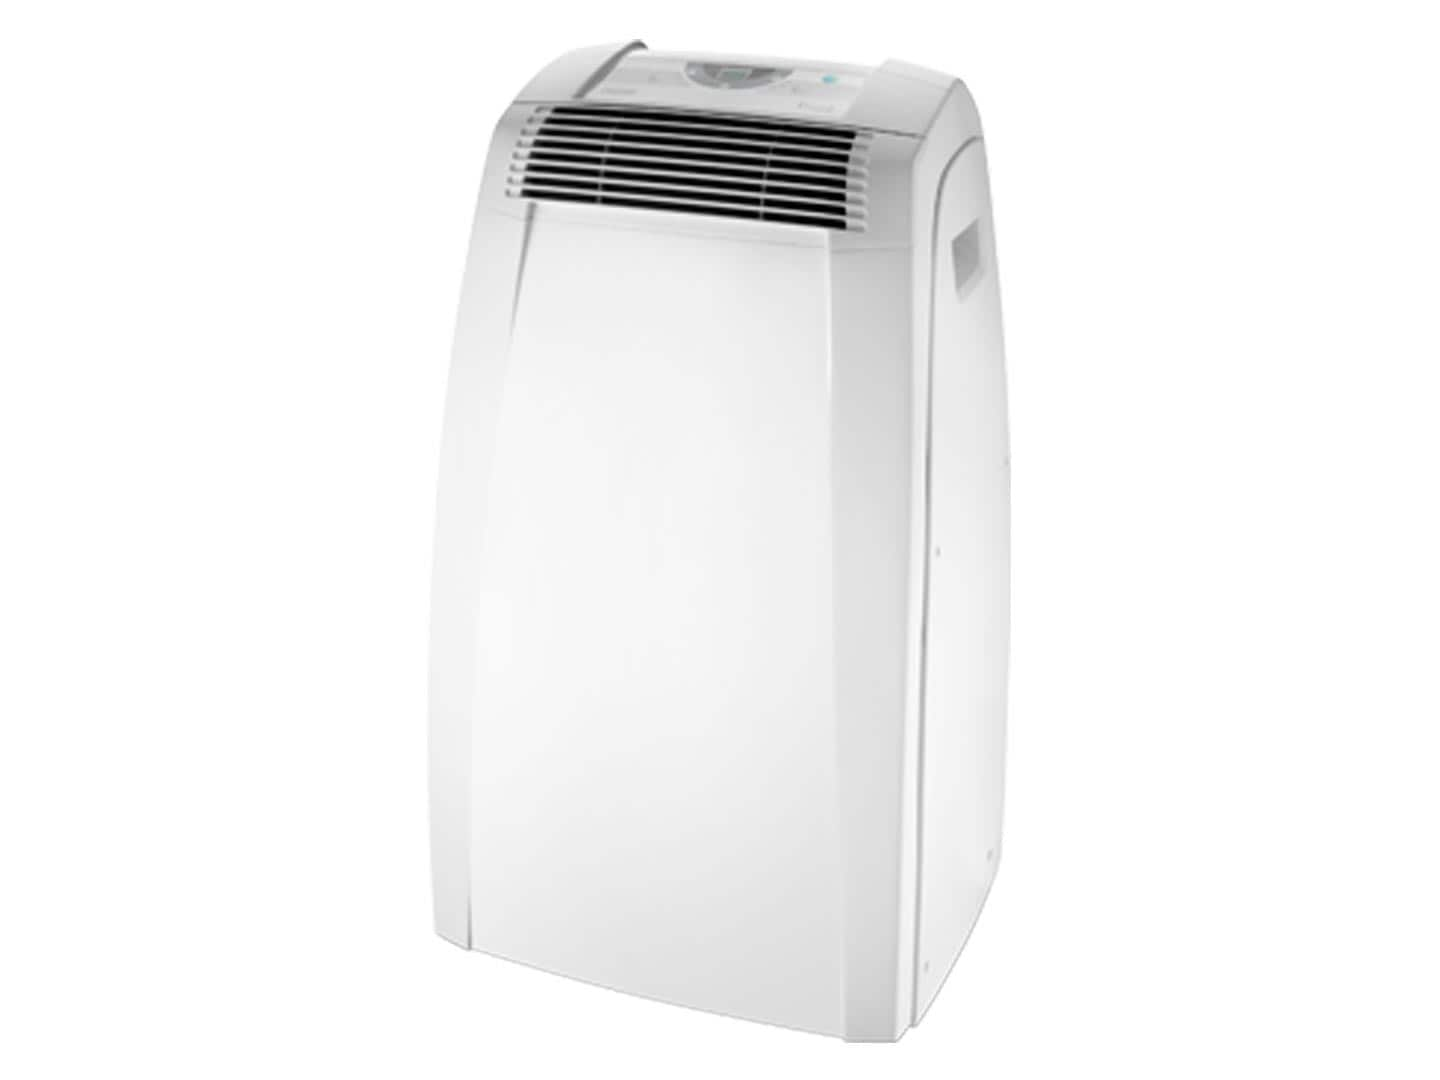 portable air conditioners: water & air models available